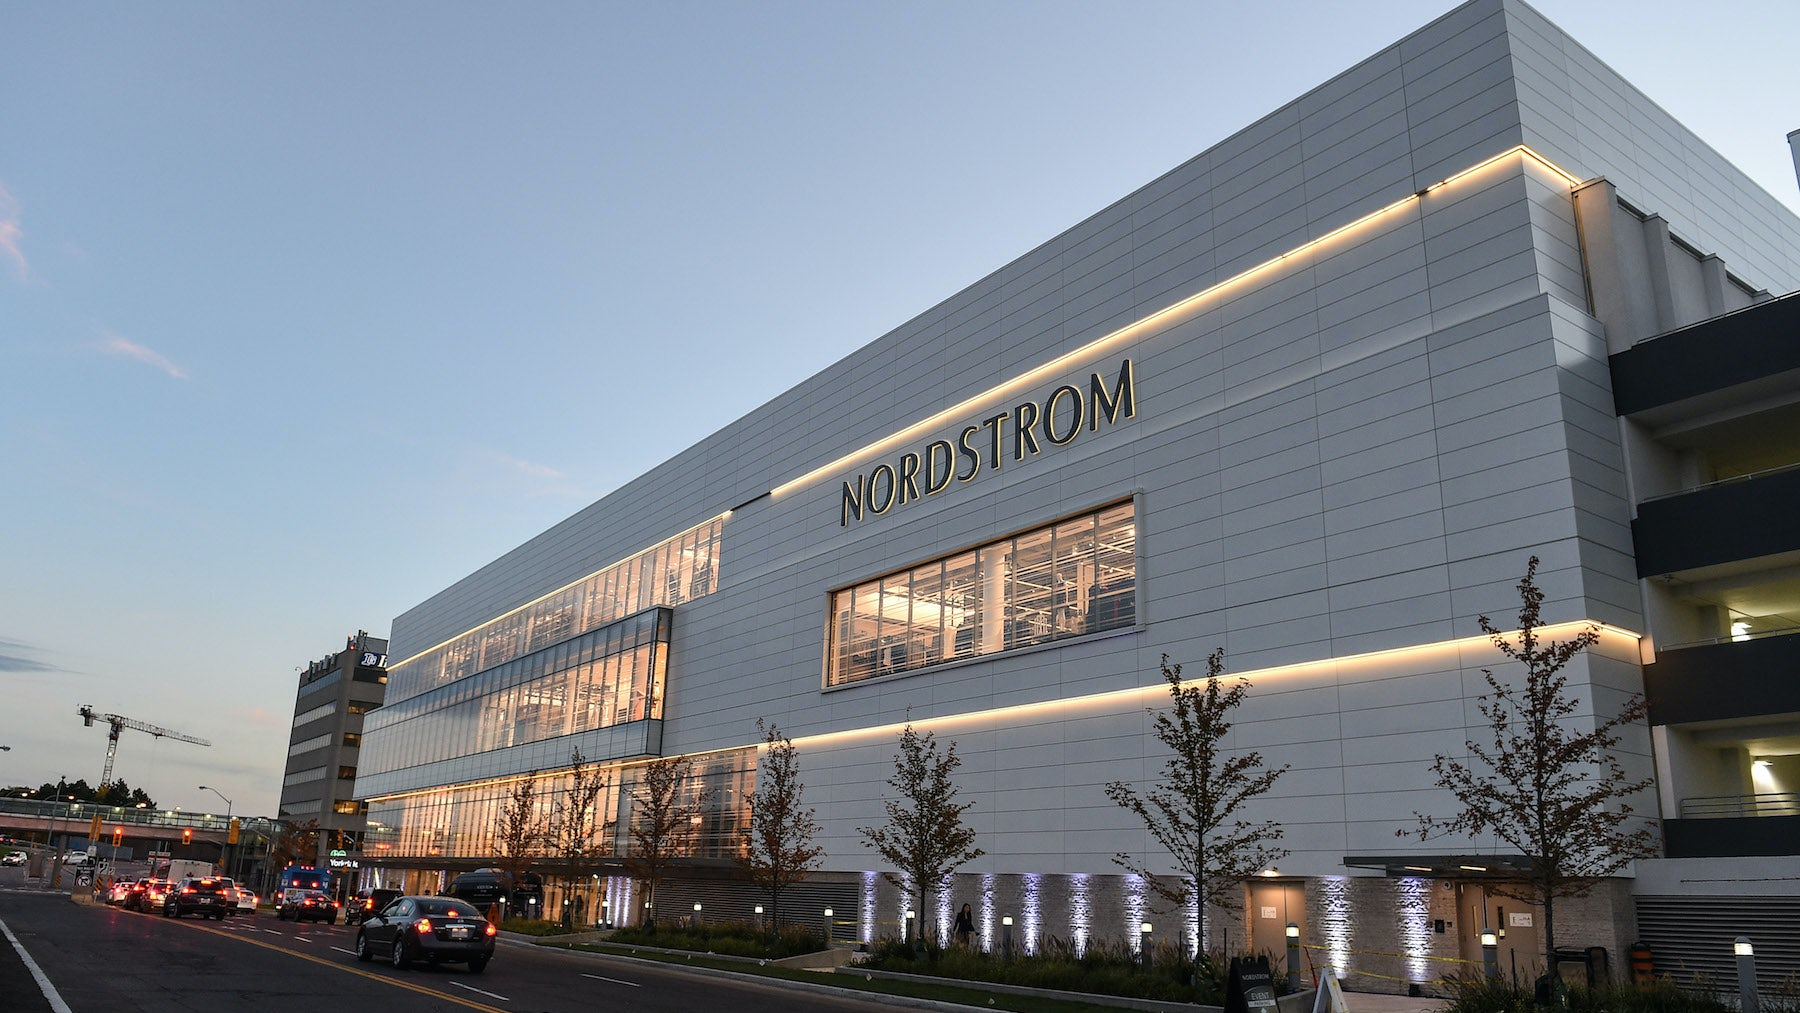 Nordstrom's store in Yorkdale, Toronto | Source: Courtesy